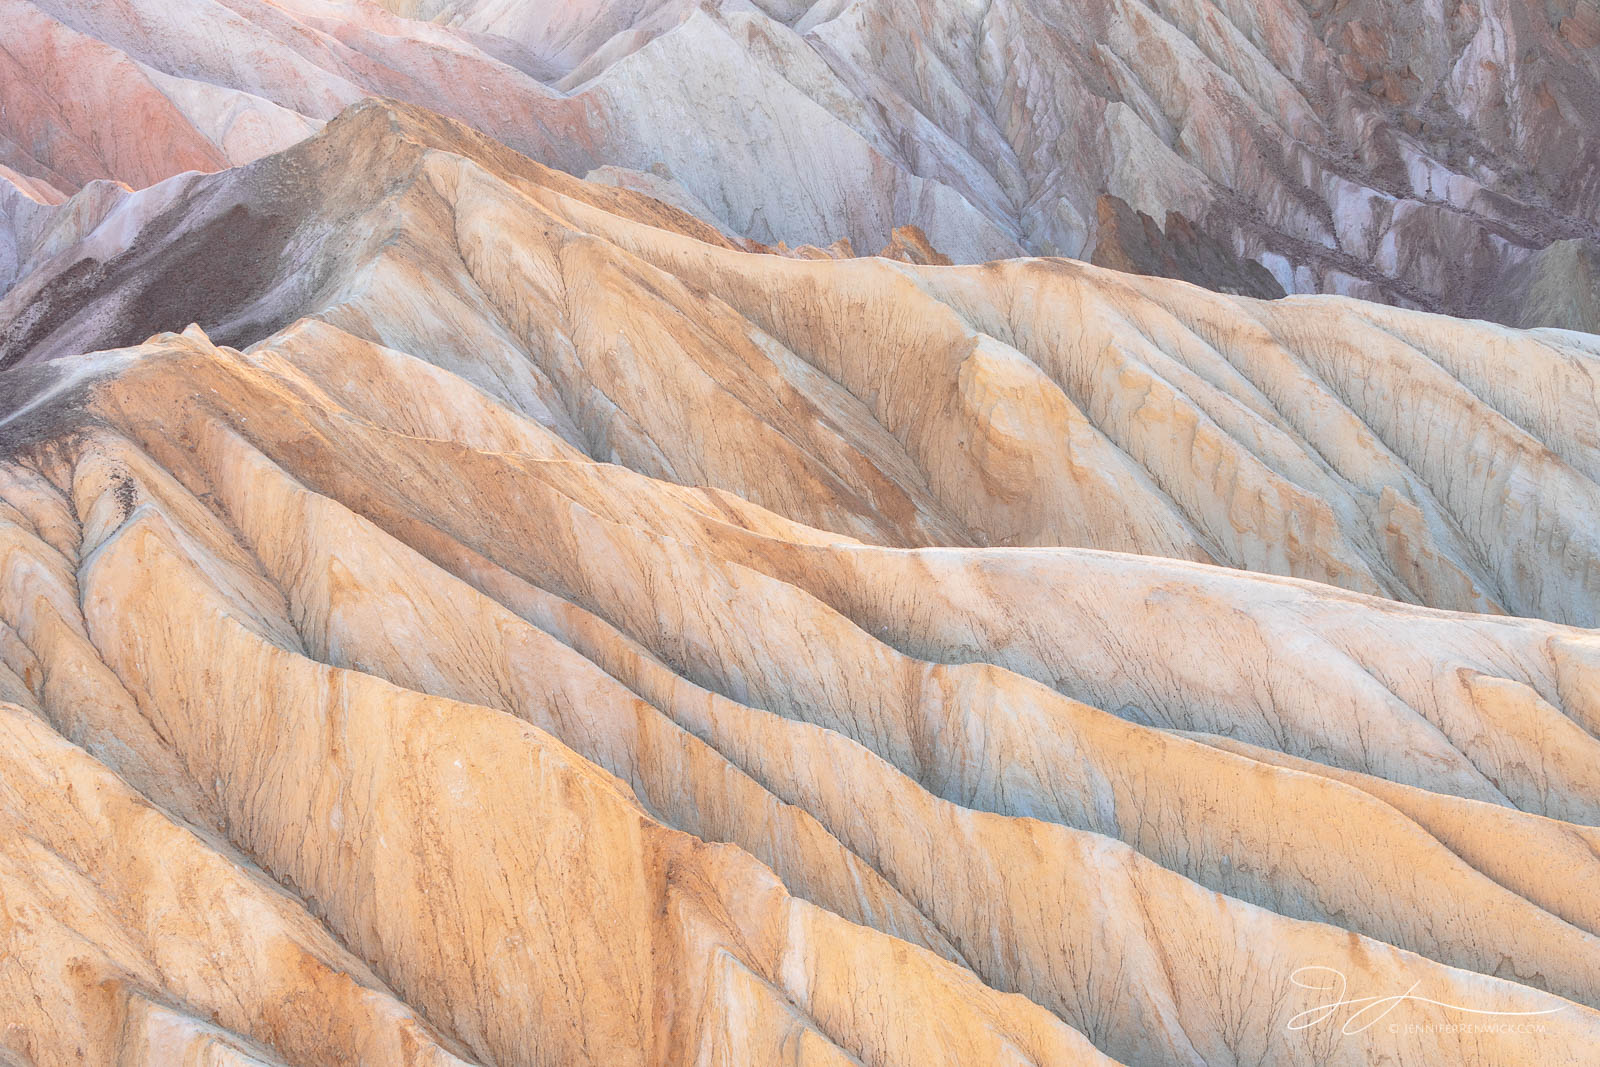 Layers and ridges in the badlands glow under the last light of the day.